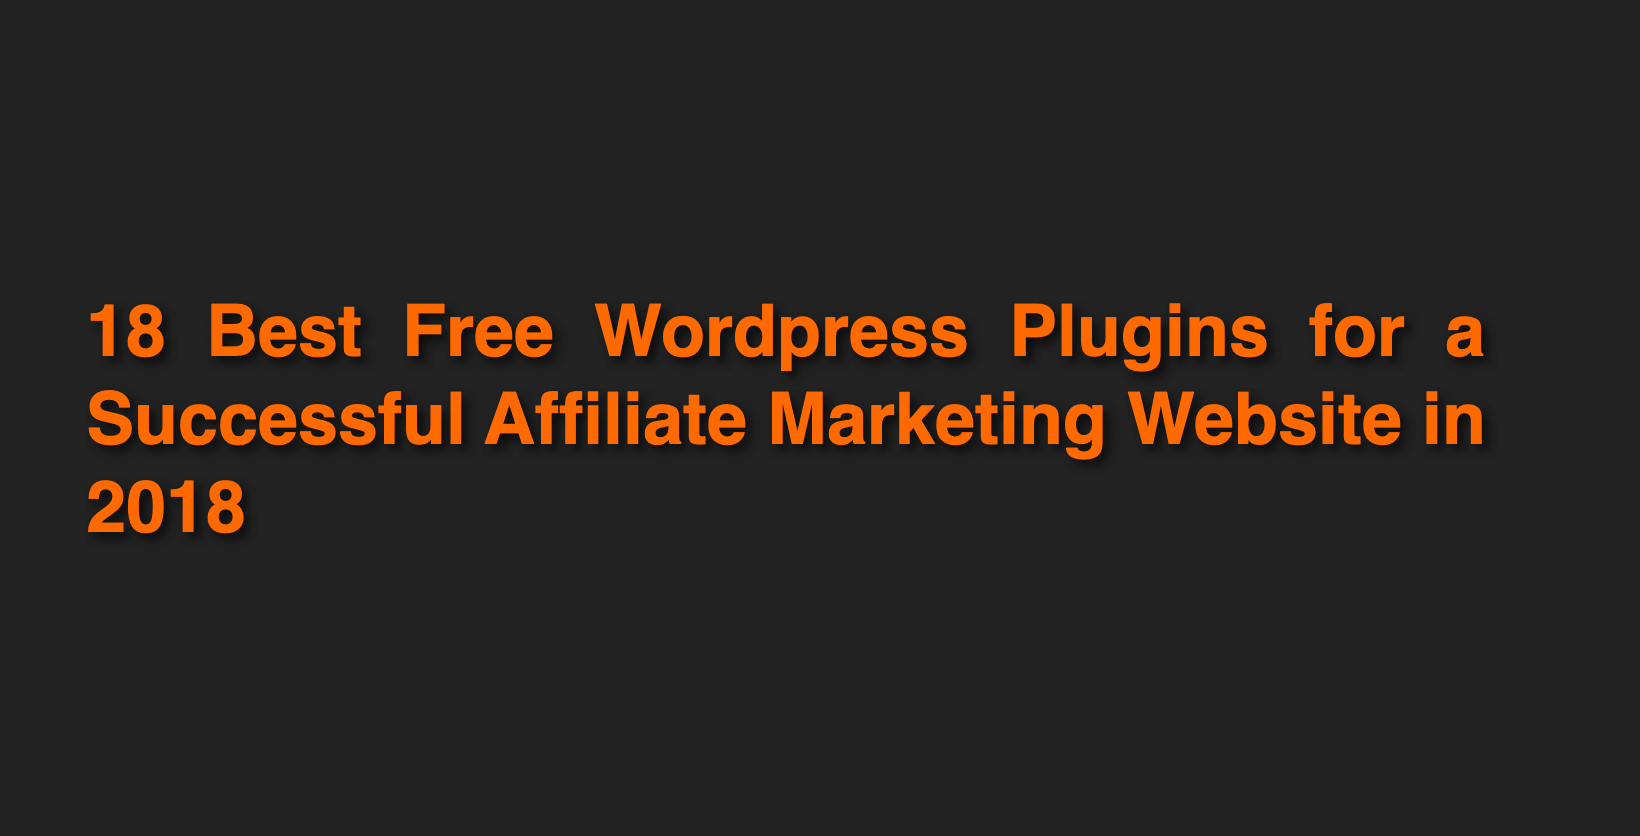 18 Best Free WordPress Plugins for a Successful Affiliate Marketing Website in 2018